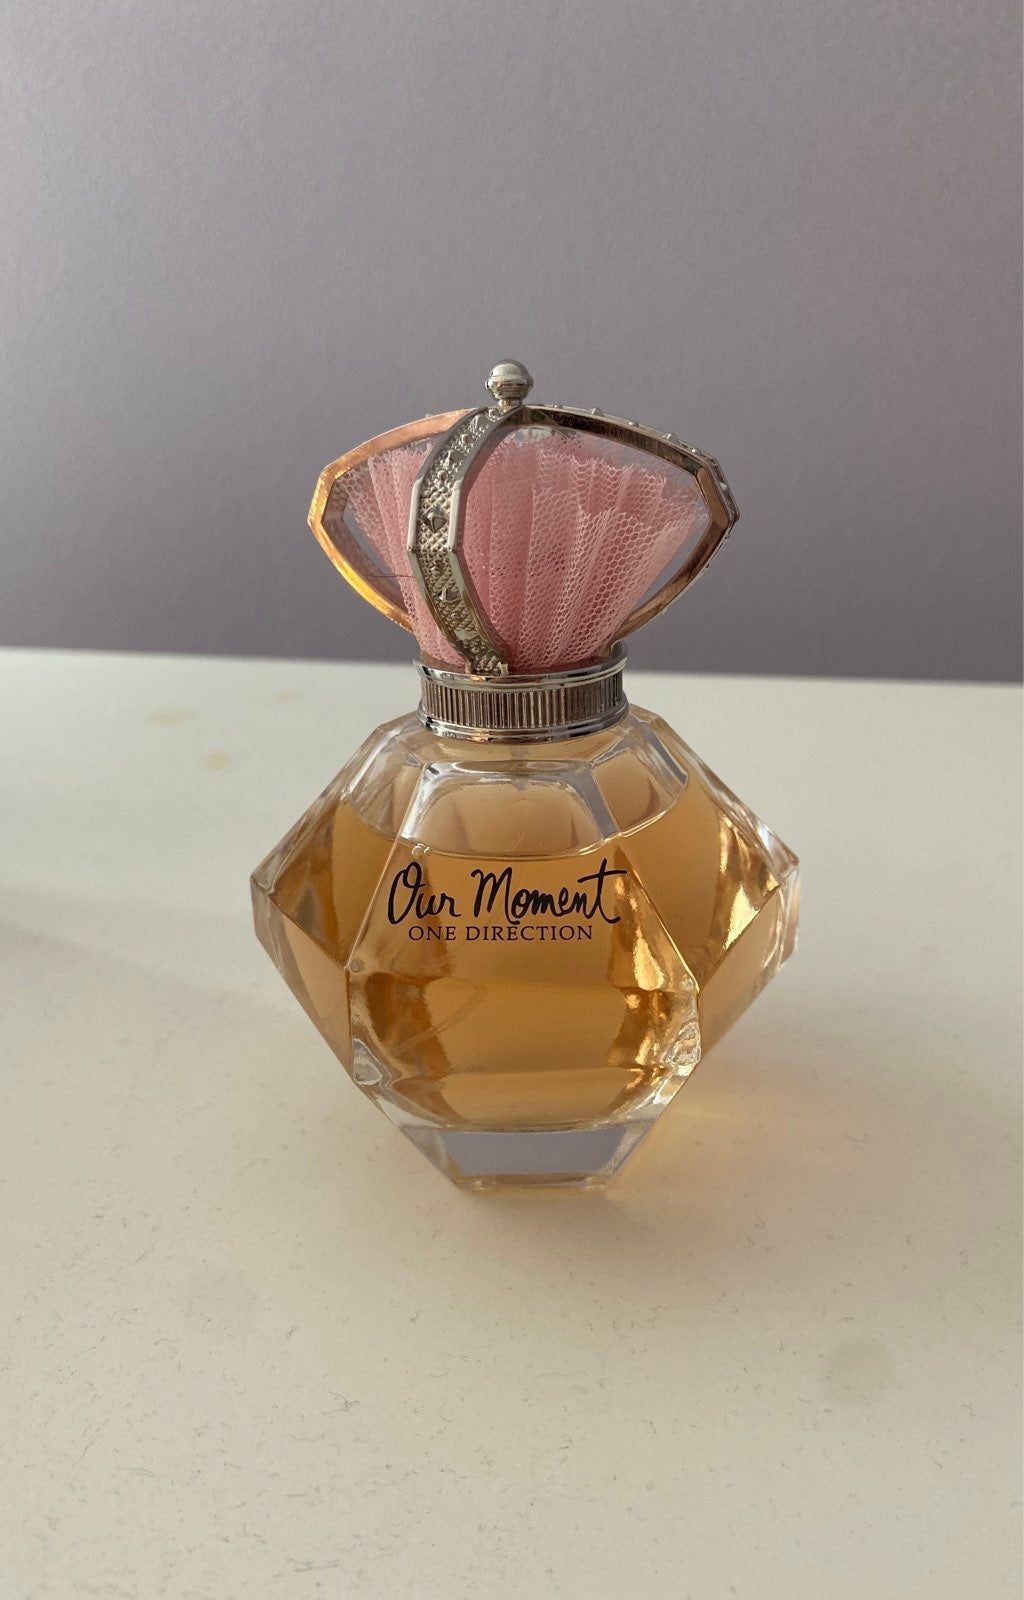 One Direction perfume